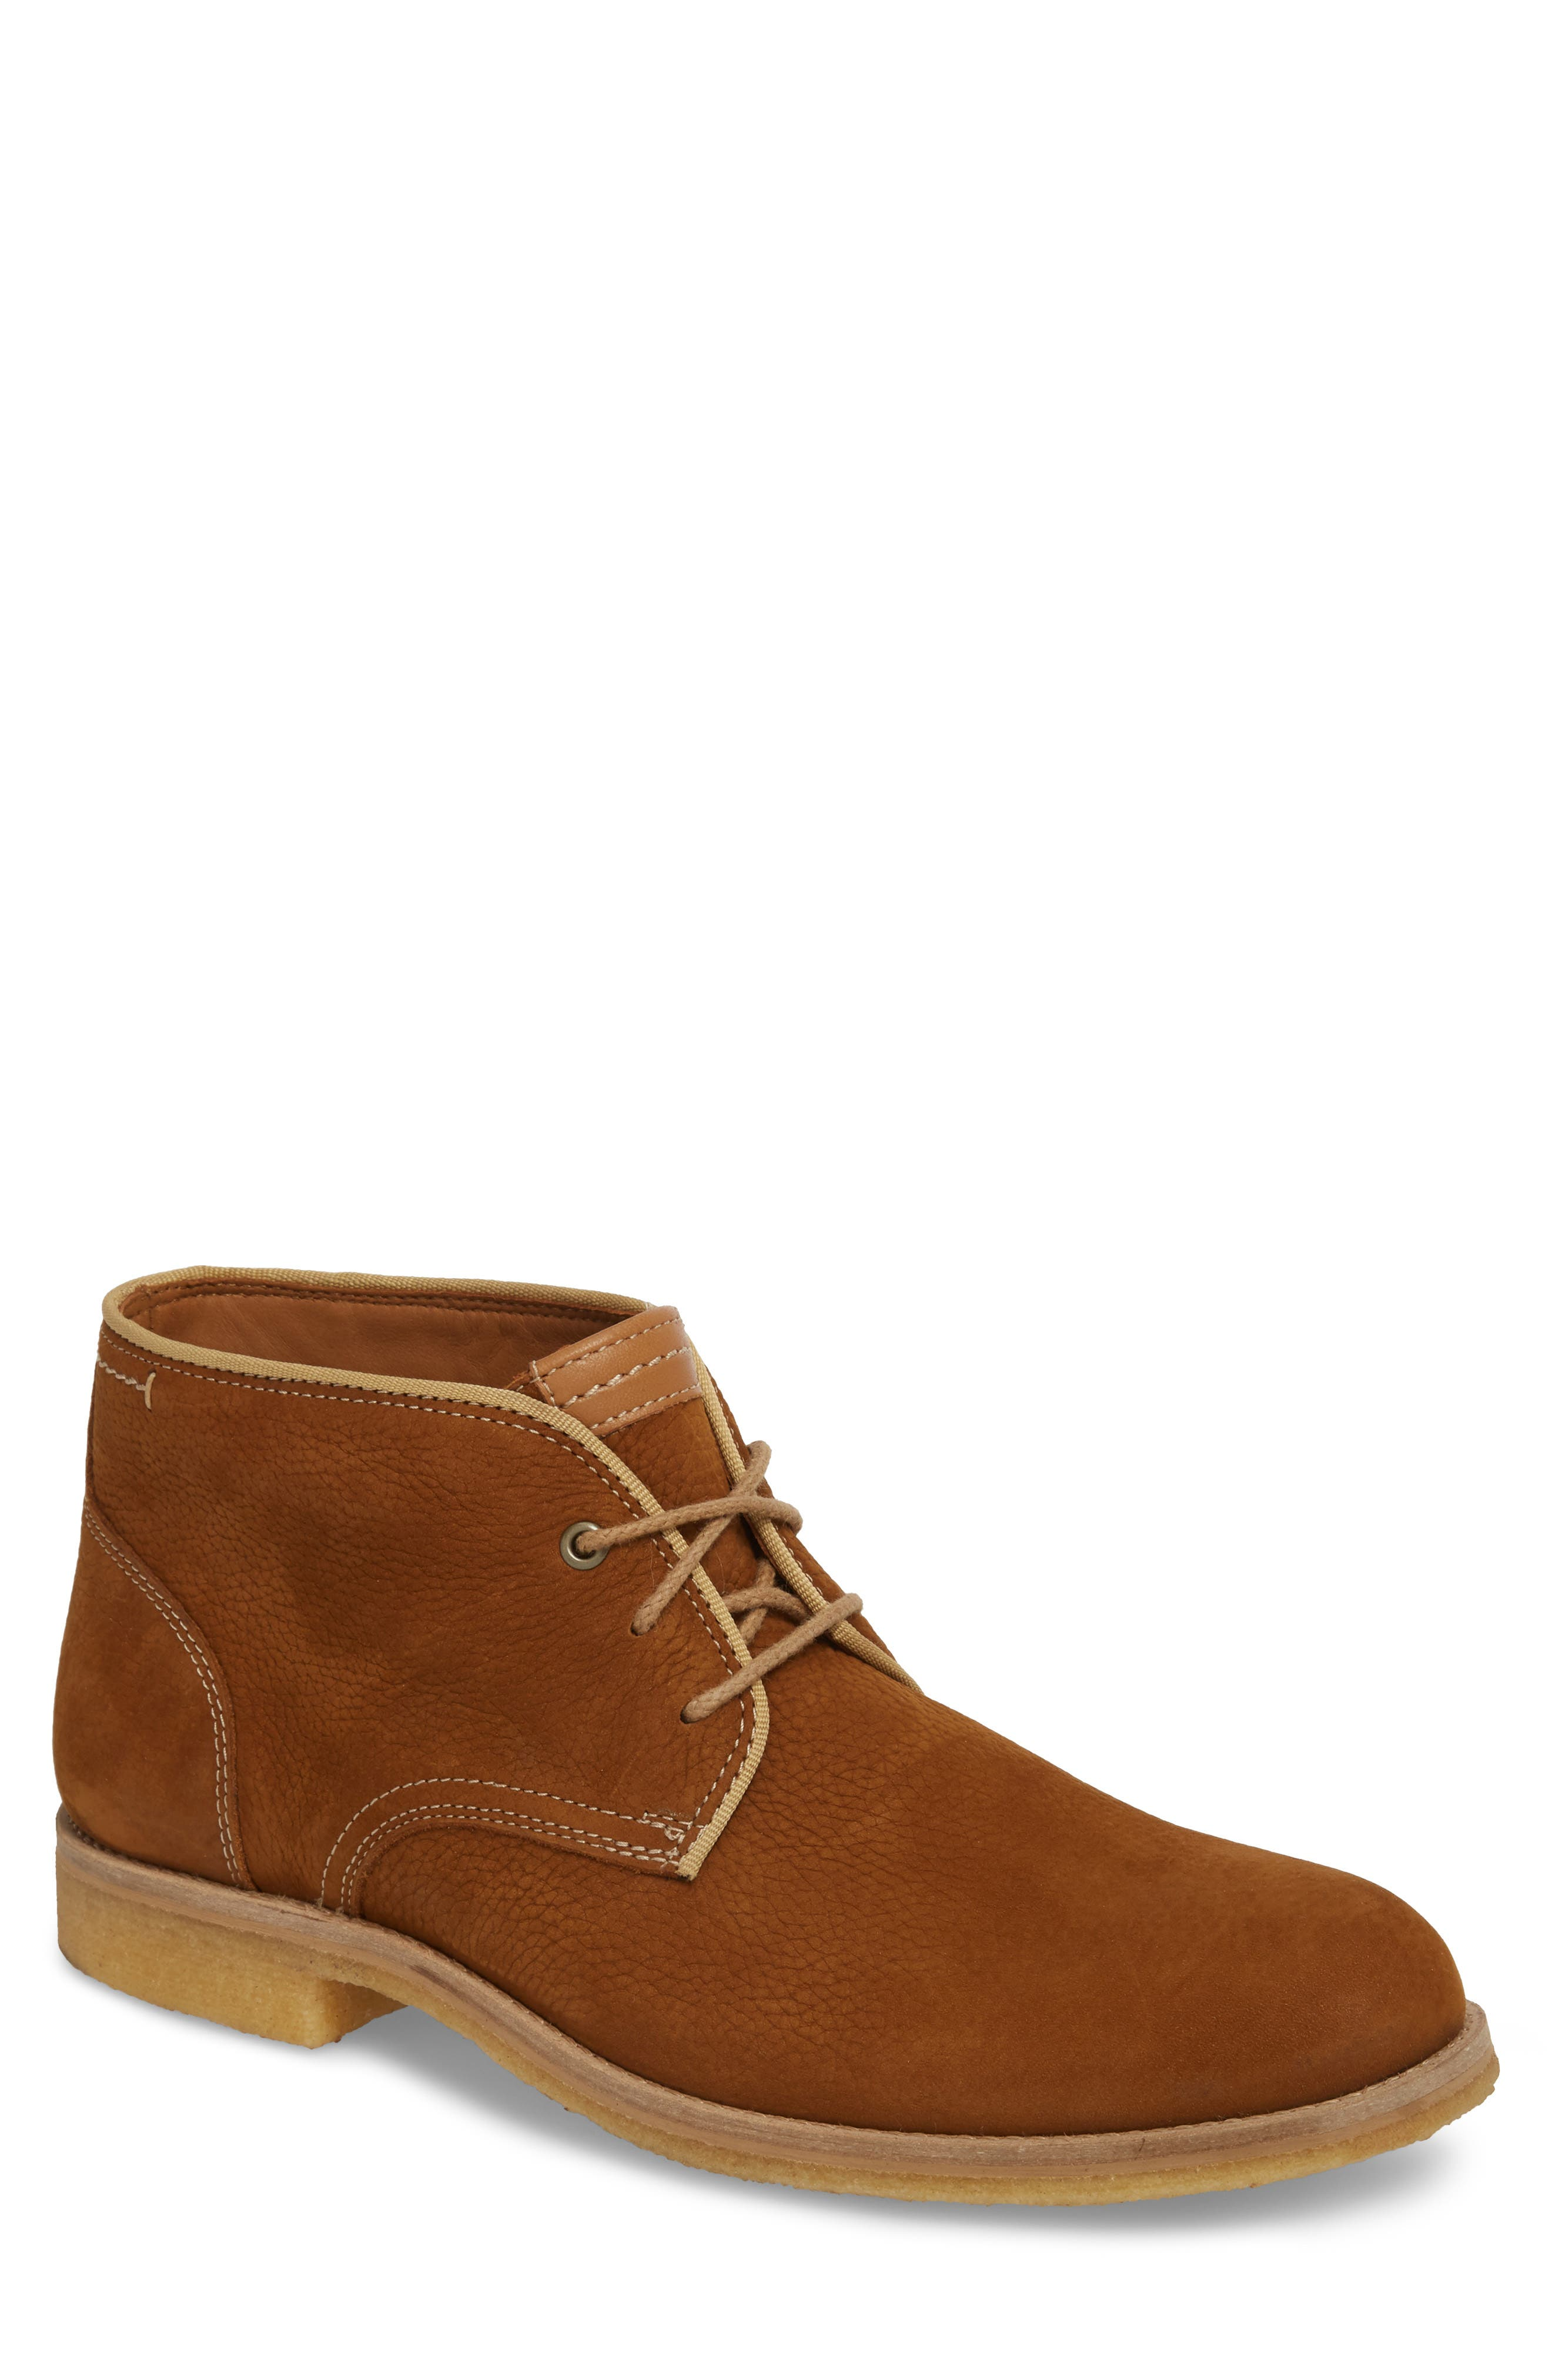 Howell Water Resistant Chukka Boot,                             Main thumbnail 1, color,                             240